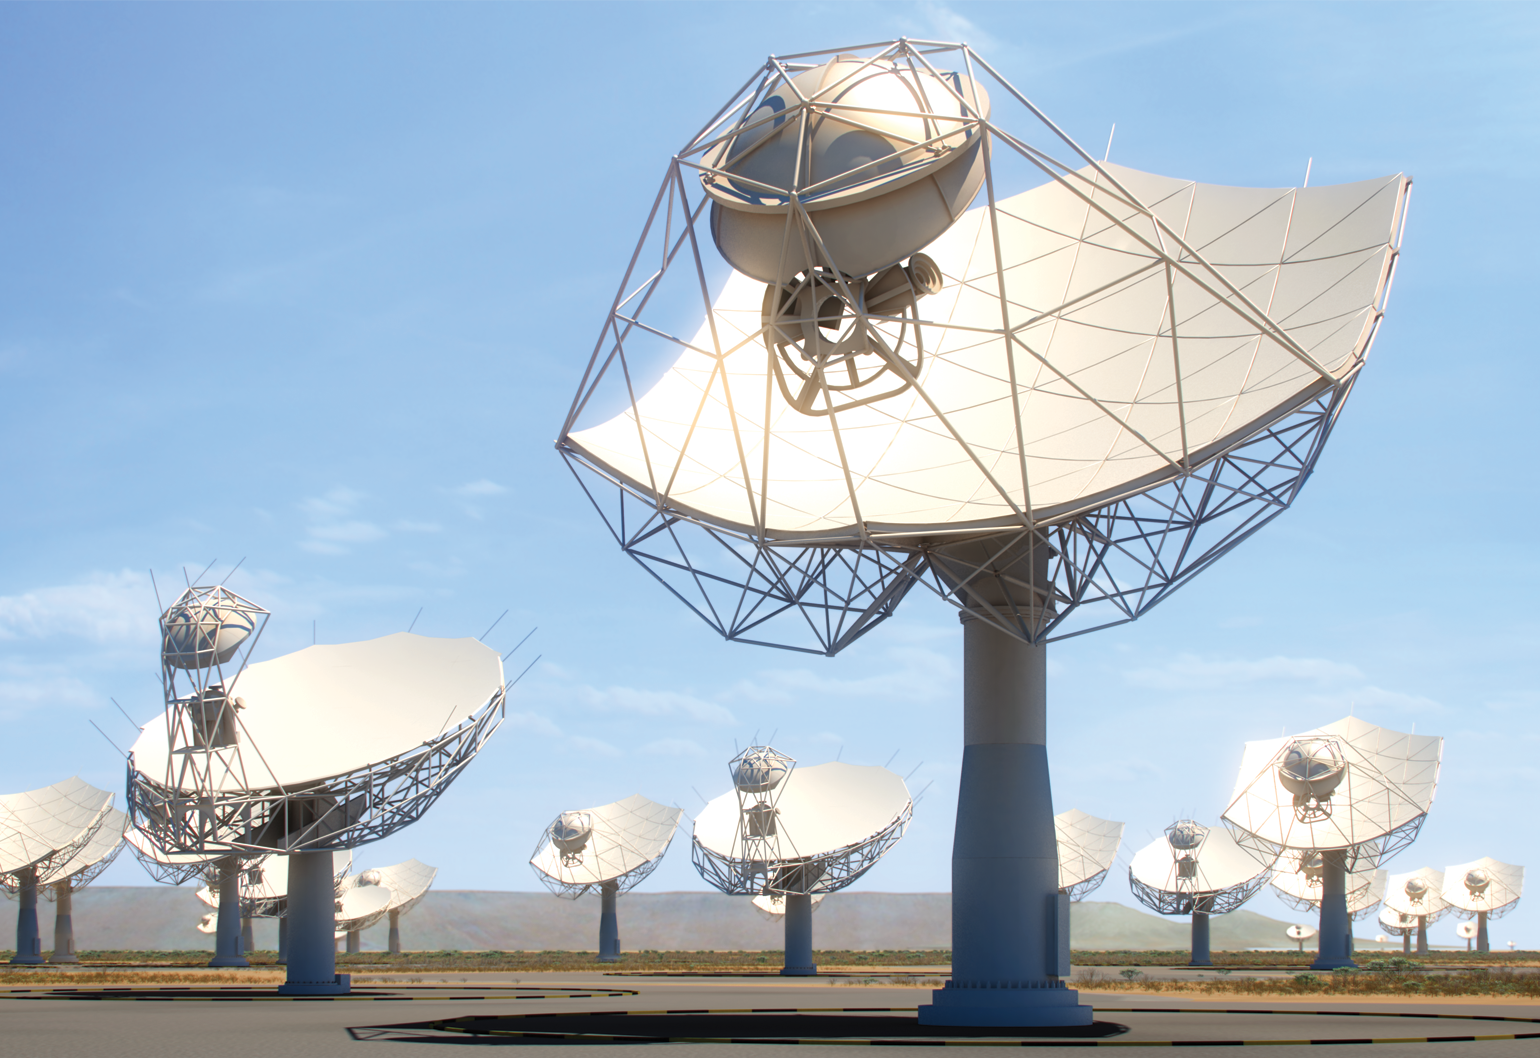 Square Kilometre Array dishes in South Africa